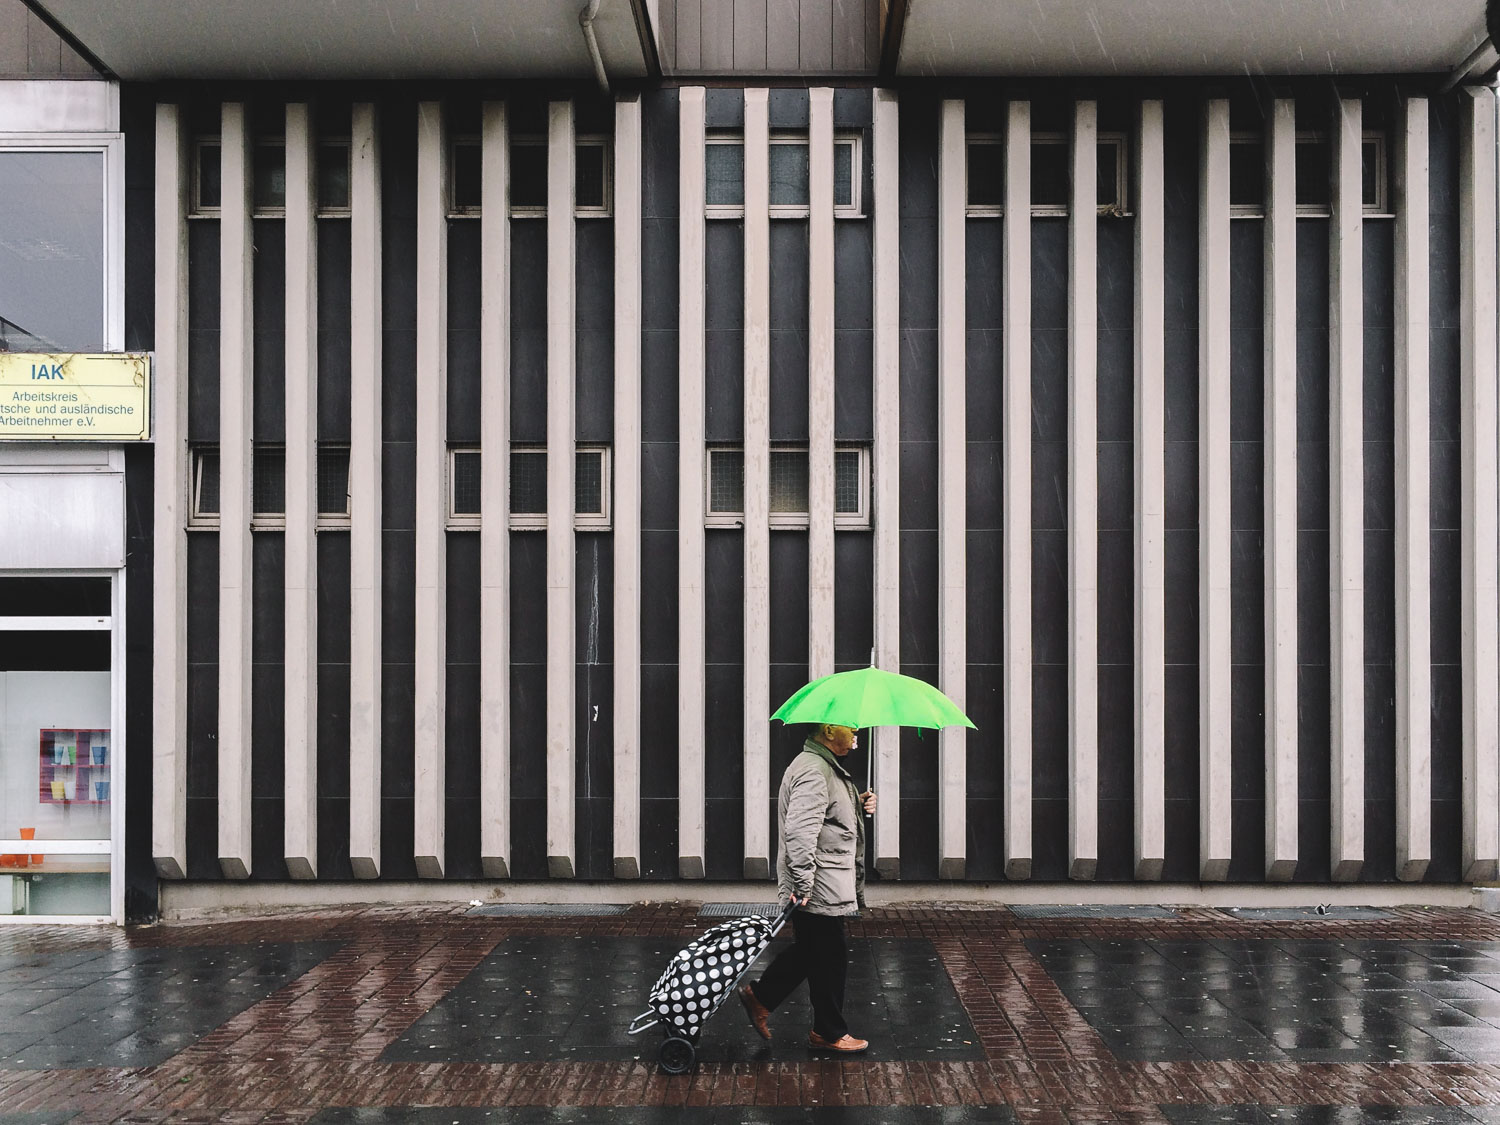 man-with-a-green-umbrella-busy-stranger-stride-by-cologne-2015-trilastiko-street-urban.jpg